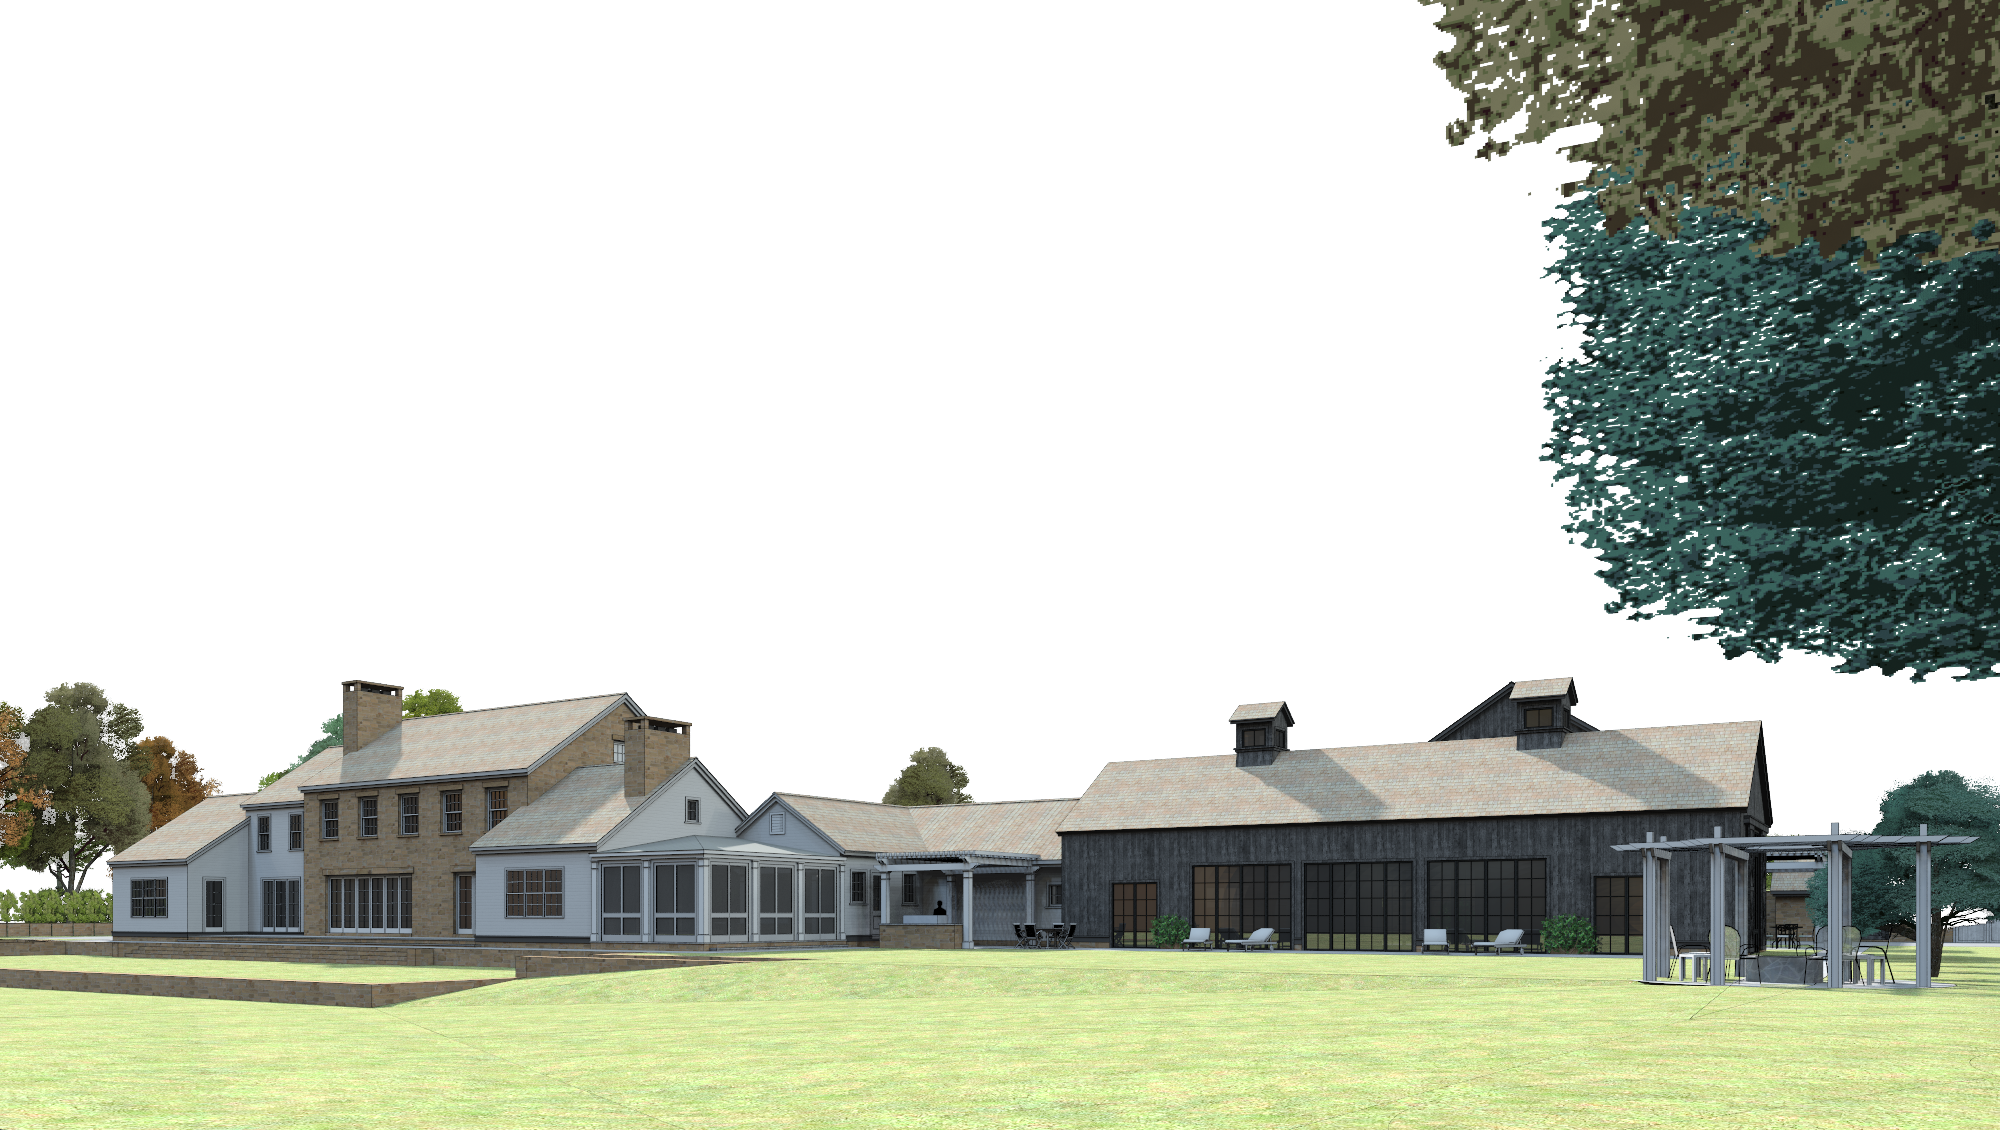 3d rendering: north view